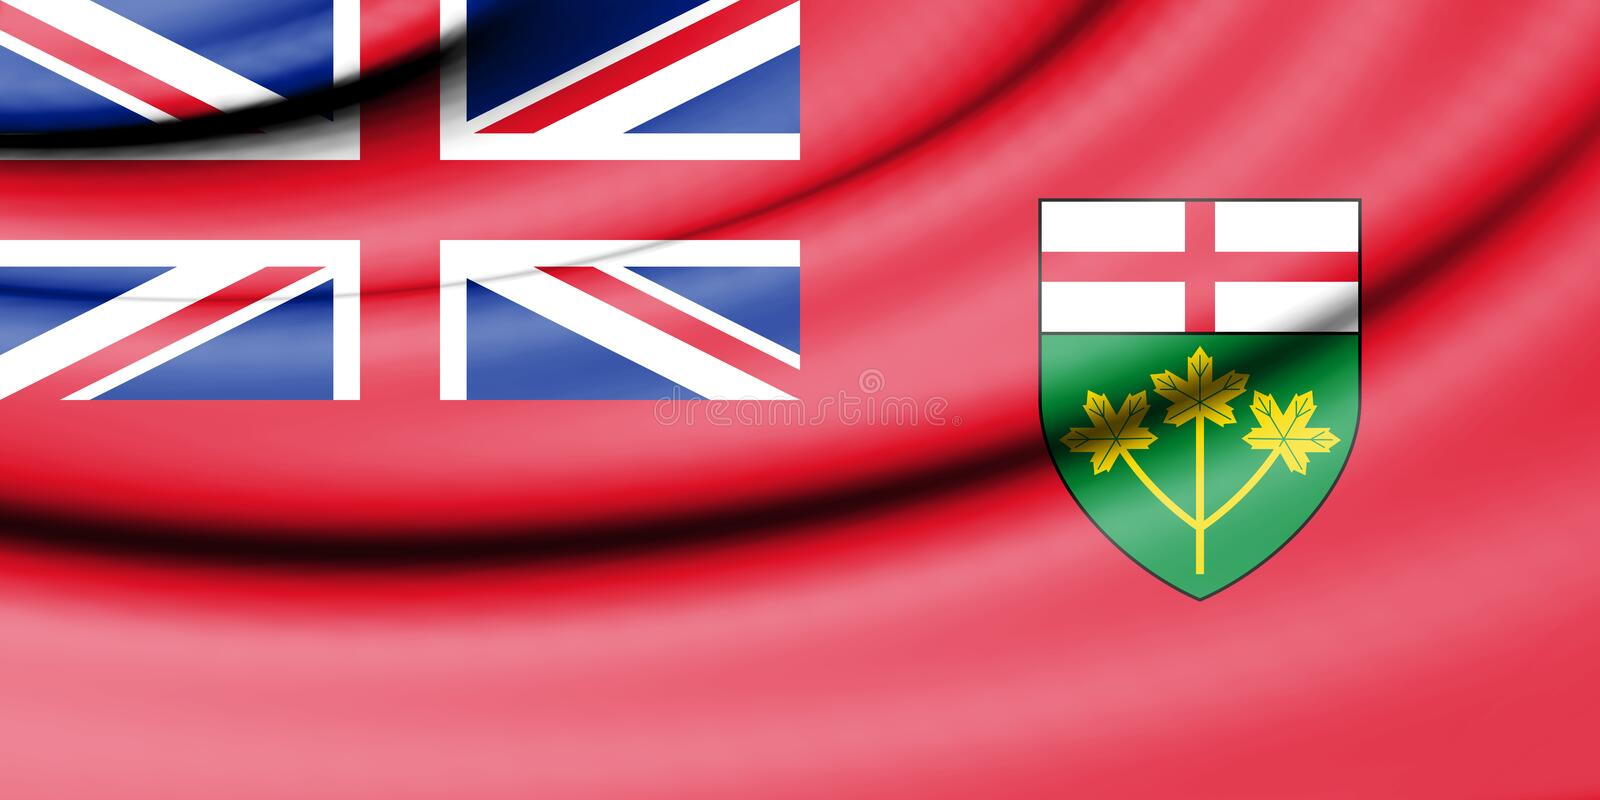 Flag of Ontario, Canada. 3d Rendered Flag of Ontario, Canada royalty free illustration